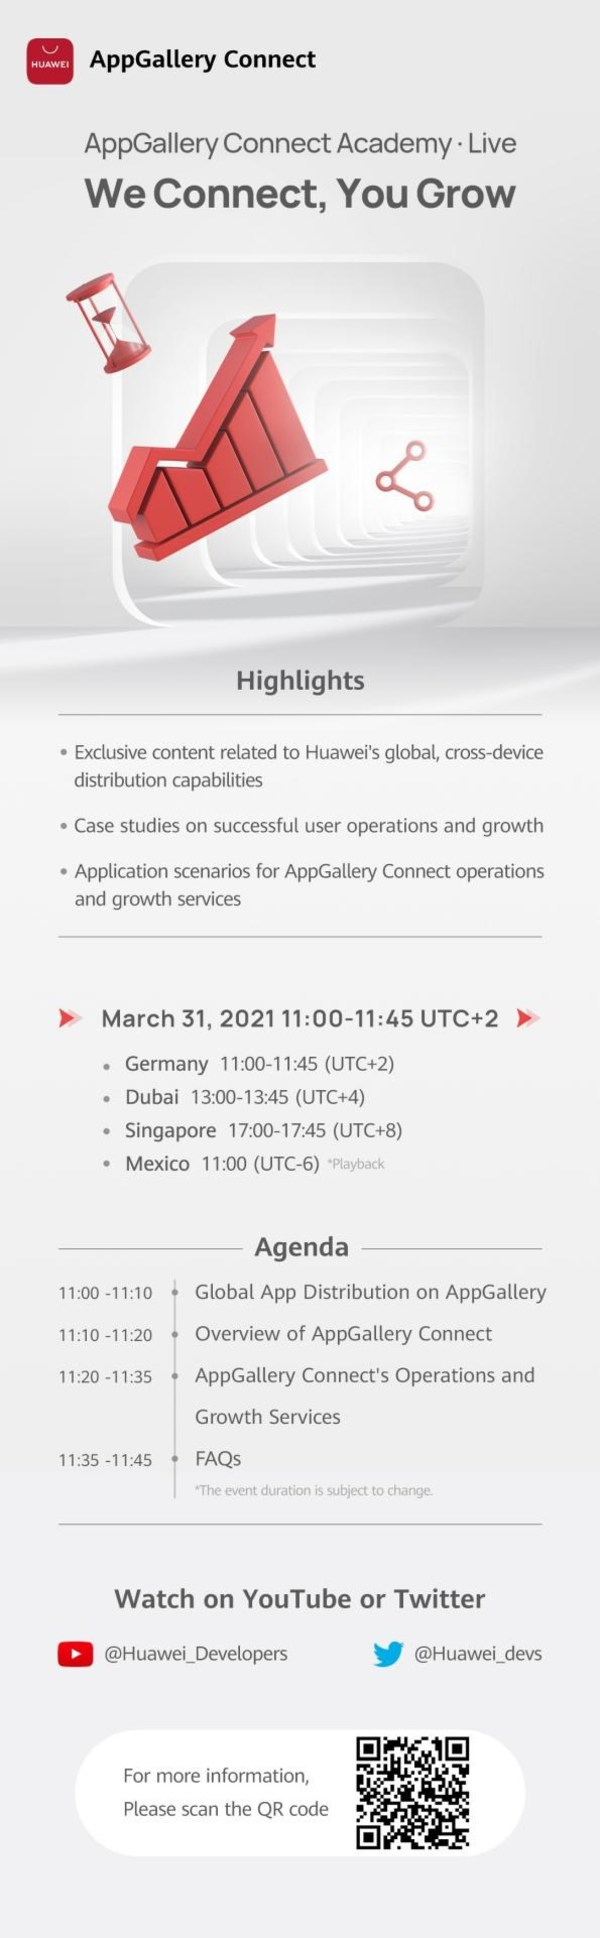 HUAWEI AppGallery Connect Academy - Live Event Offers Actionable Insights and Empowers App Developers to Grow Their Business to New Levels